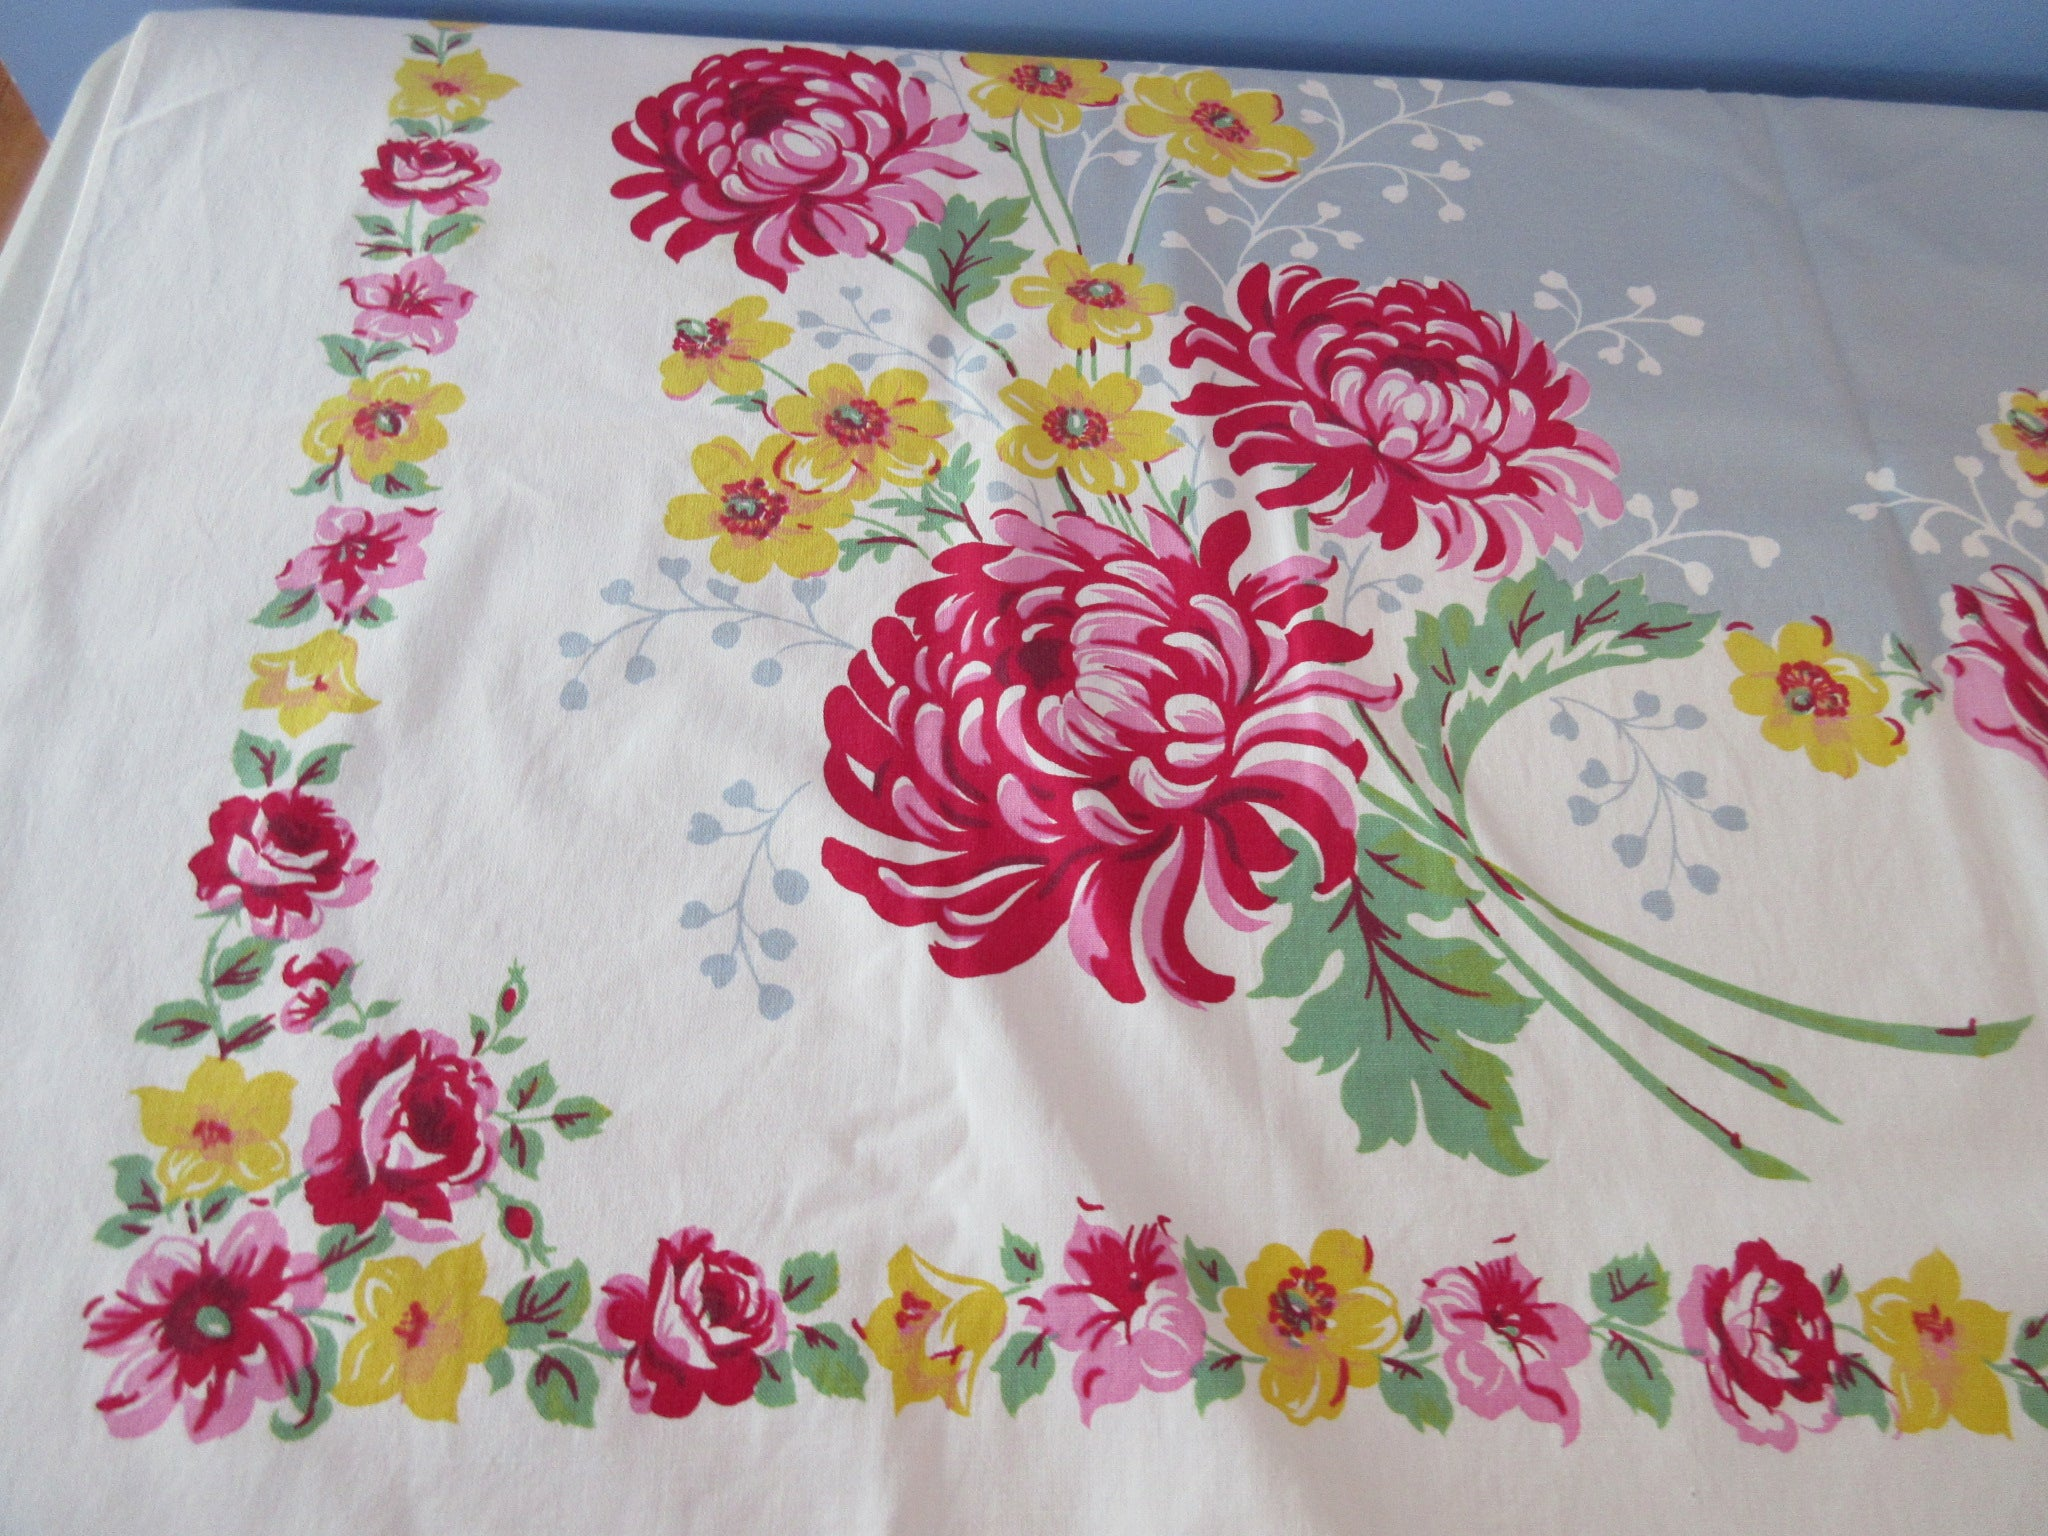 Pink Chrysanthemums Roses on Gray Floral Vintage Printed Tablecloth (52 X 50)